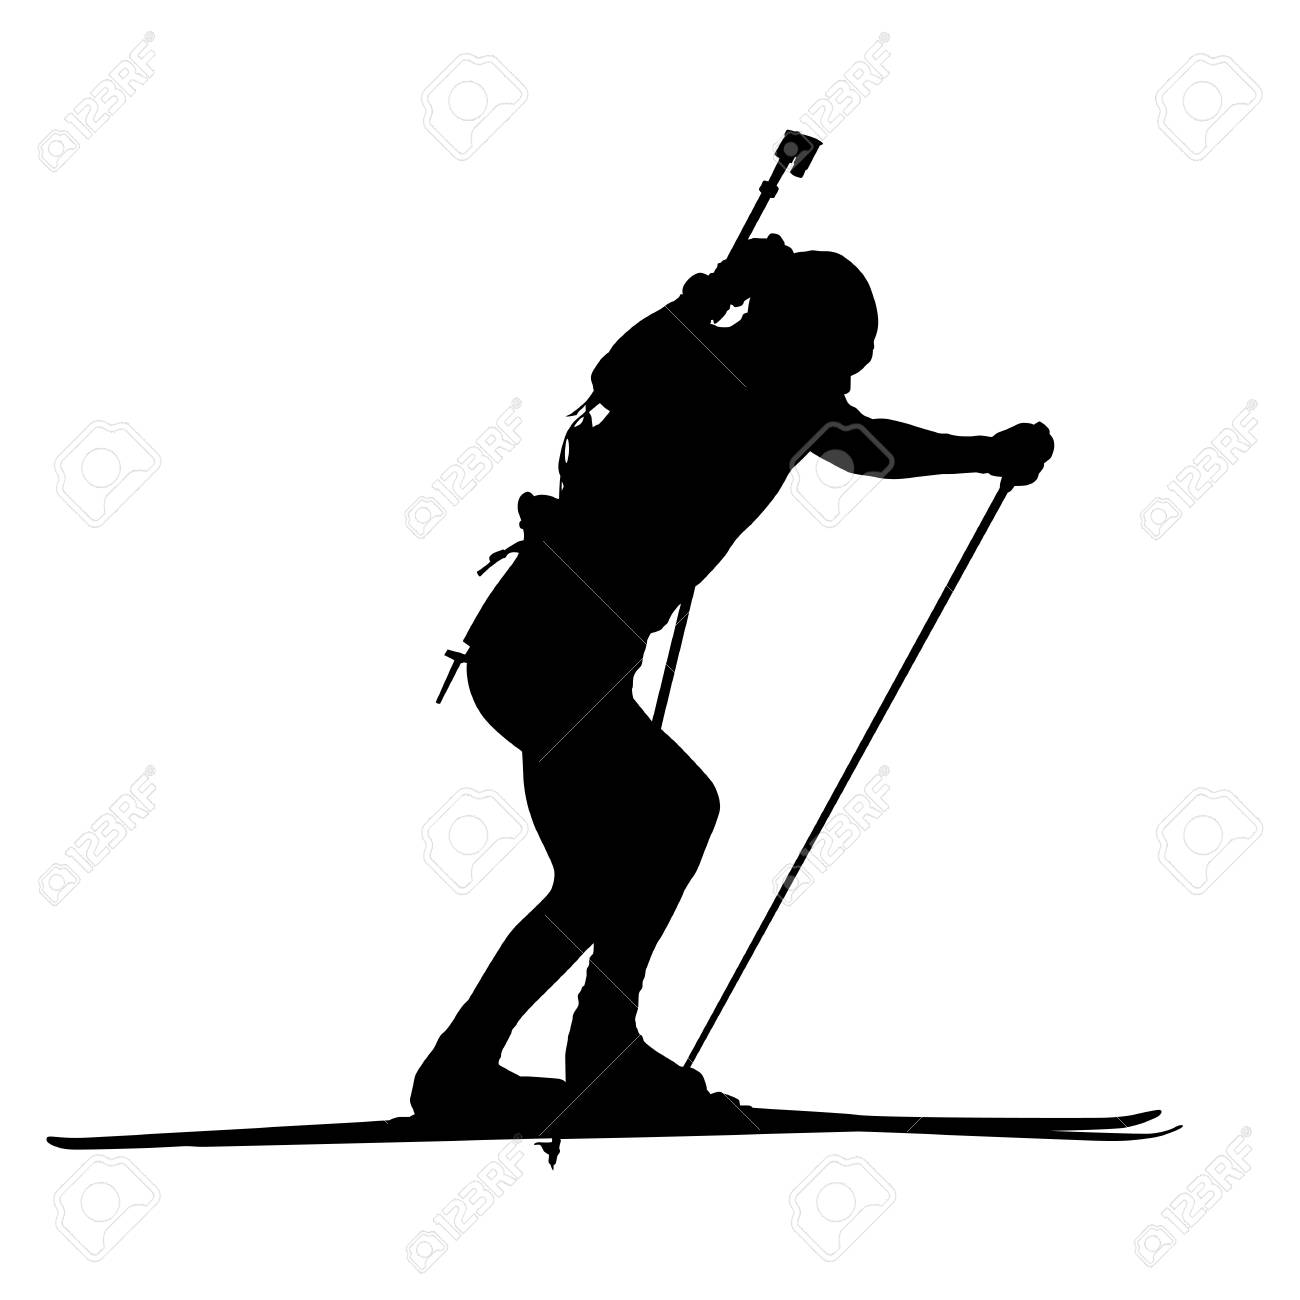 Biathlon Man Running Vector Isolated Silhouette Winter Sports Icon Cross Country Skiing Stock